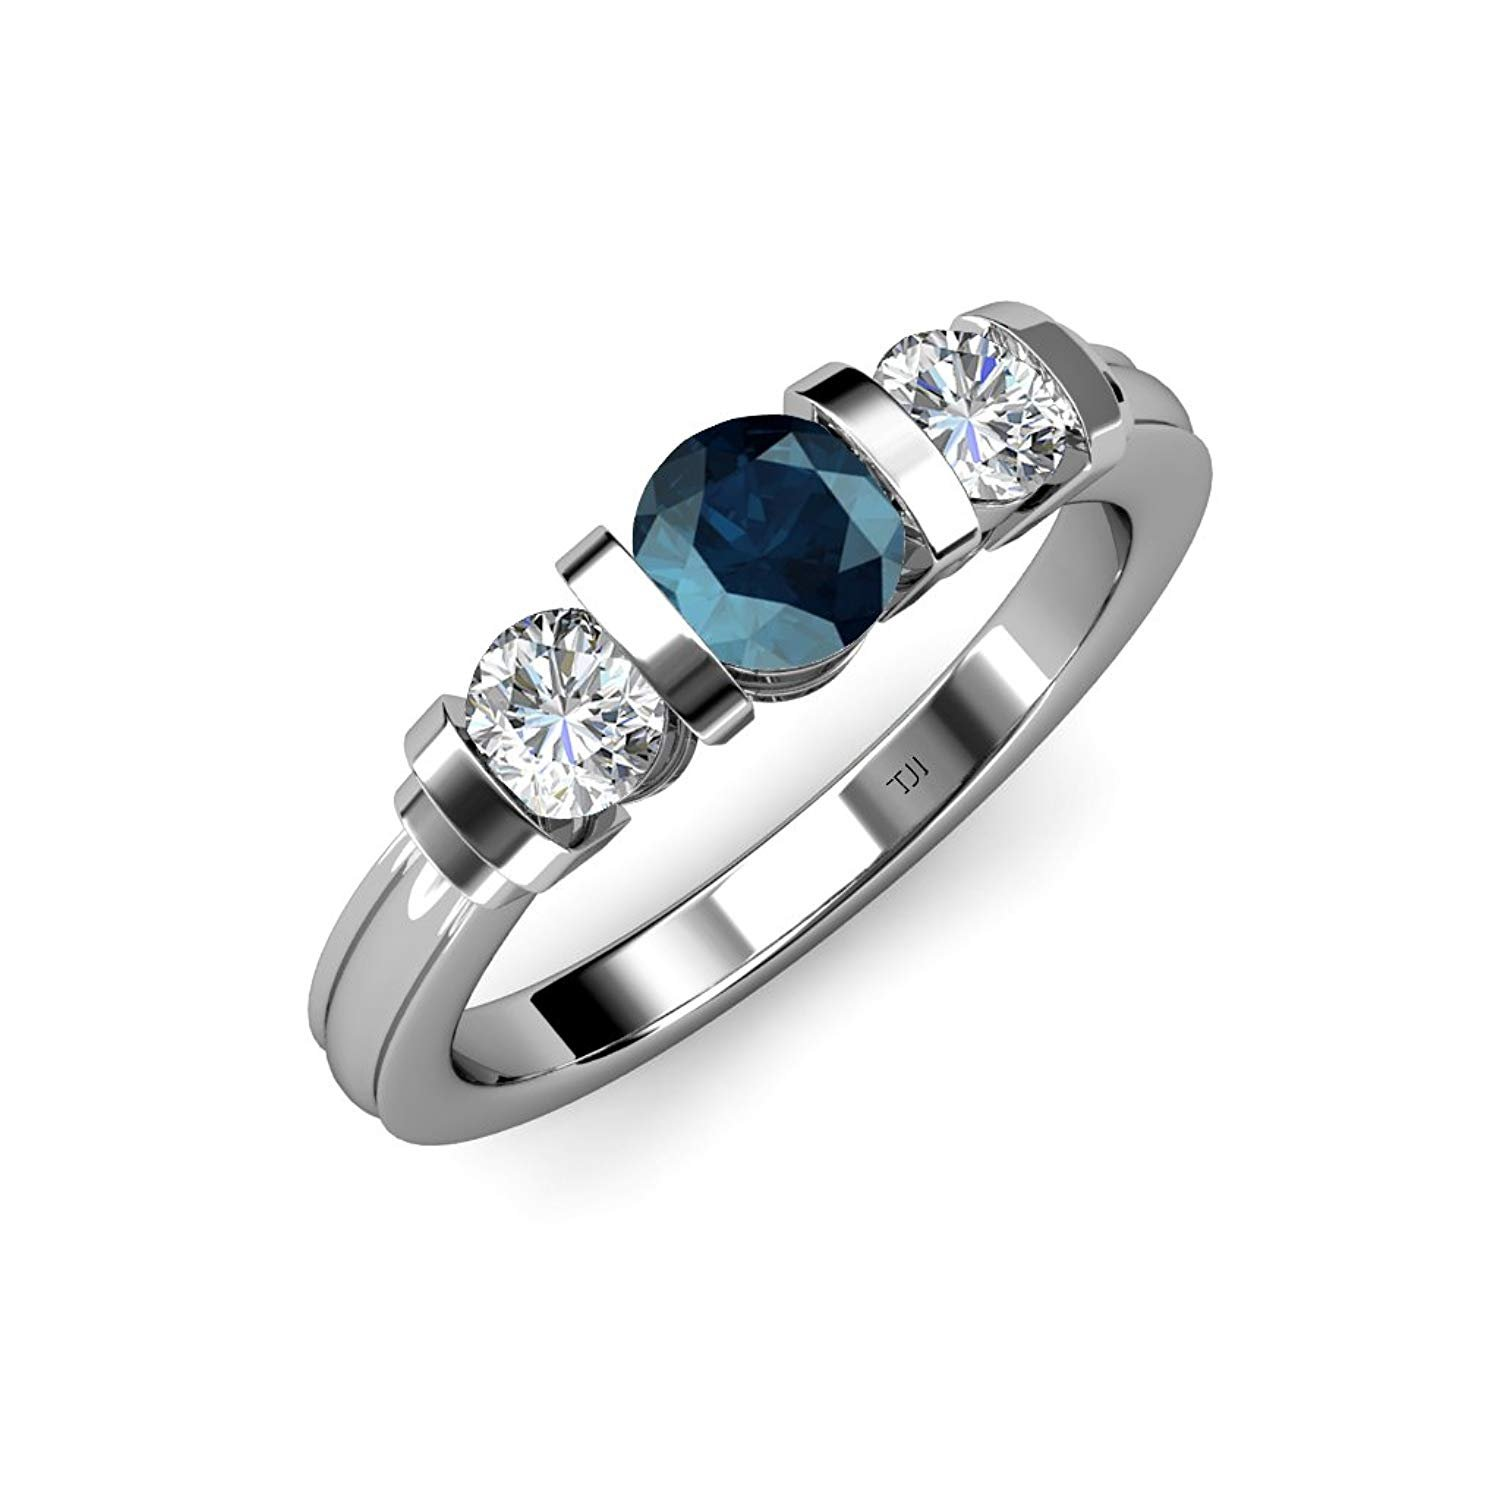 Blue and White Diamond (SI2-I1, G-H) Bar Set Three Stone Ring 1.10 ct tw in 14K White Gold.size 9.0 by TriJewels